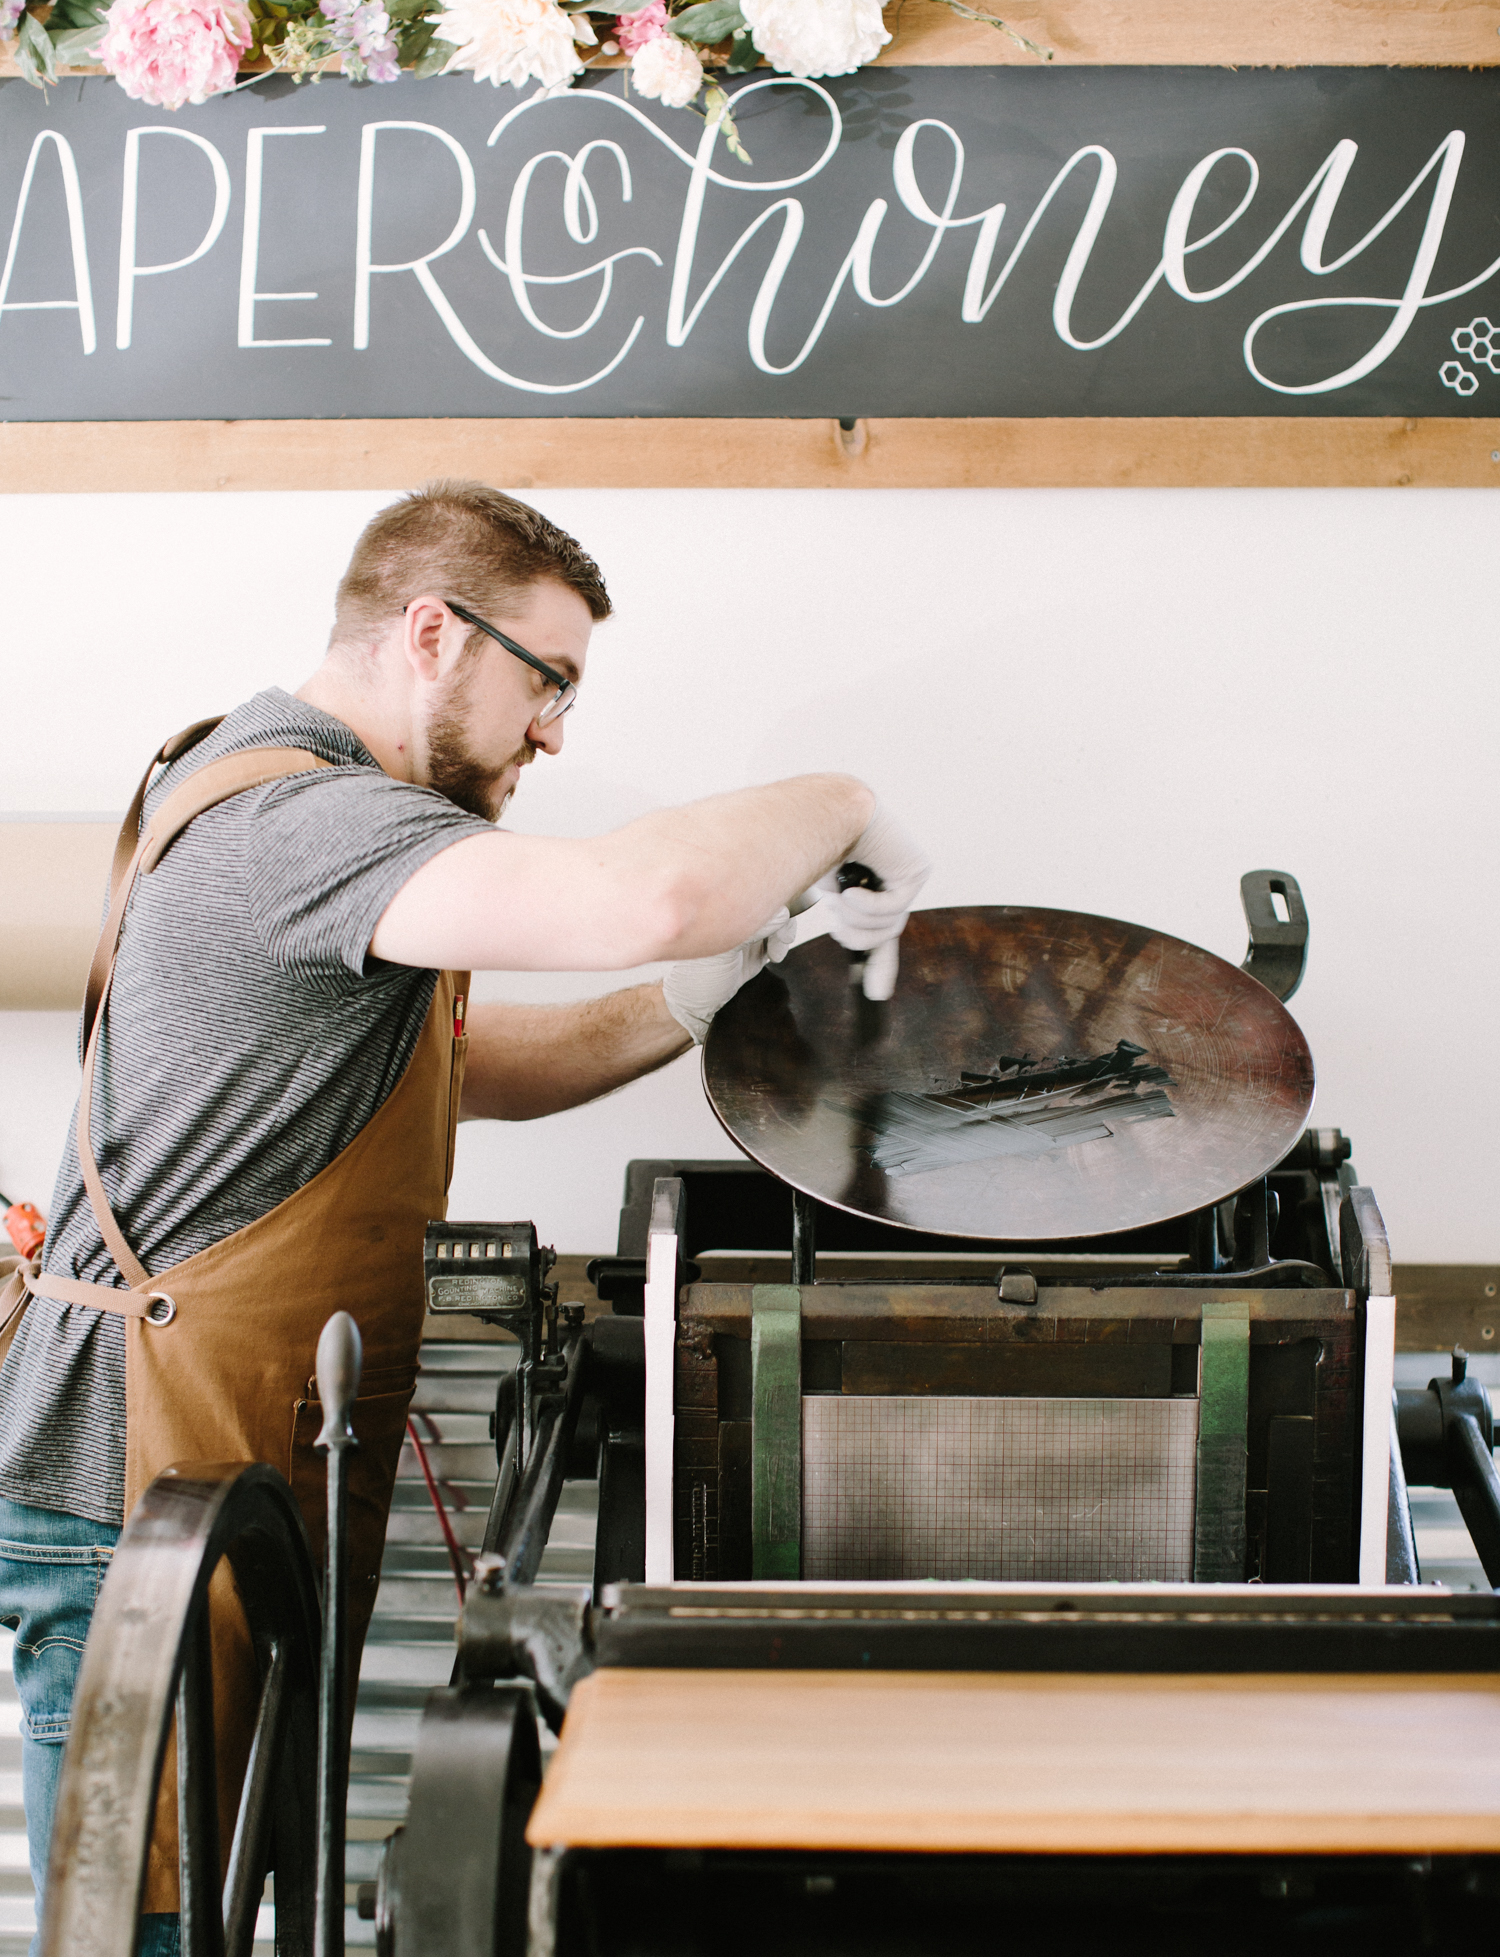 A pressman for Paper and Honey applies ink to an antique letterpress during brand photos in Brighton, Michigan